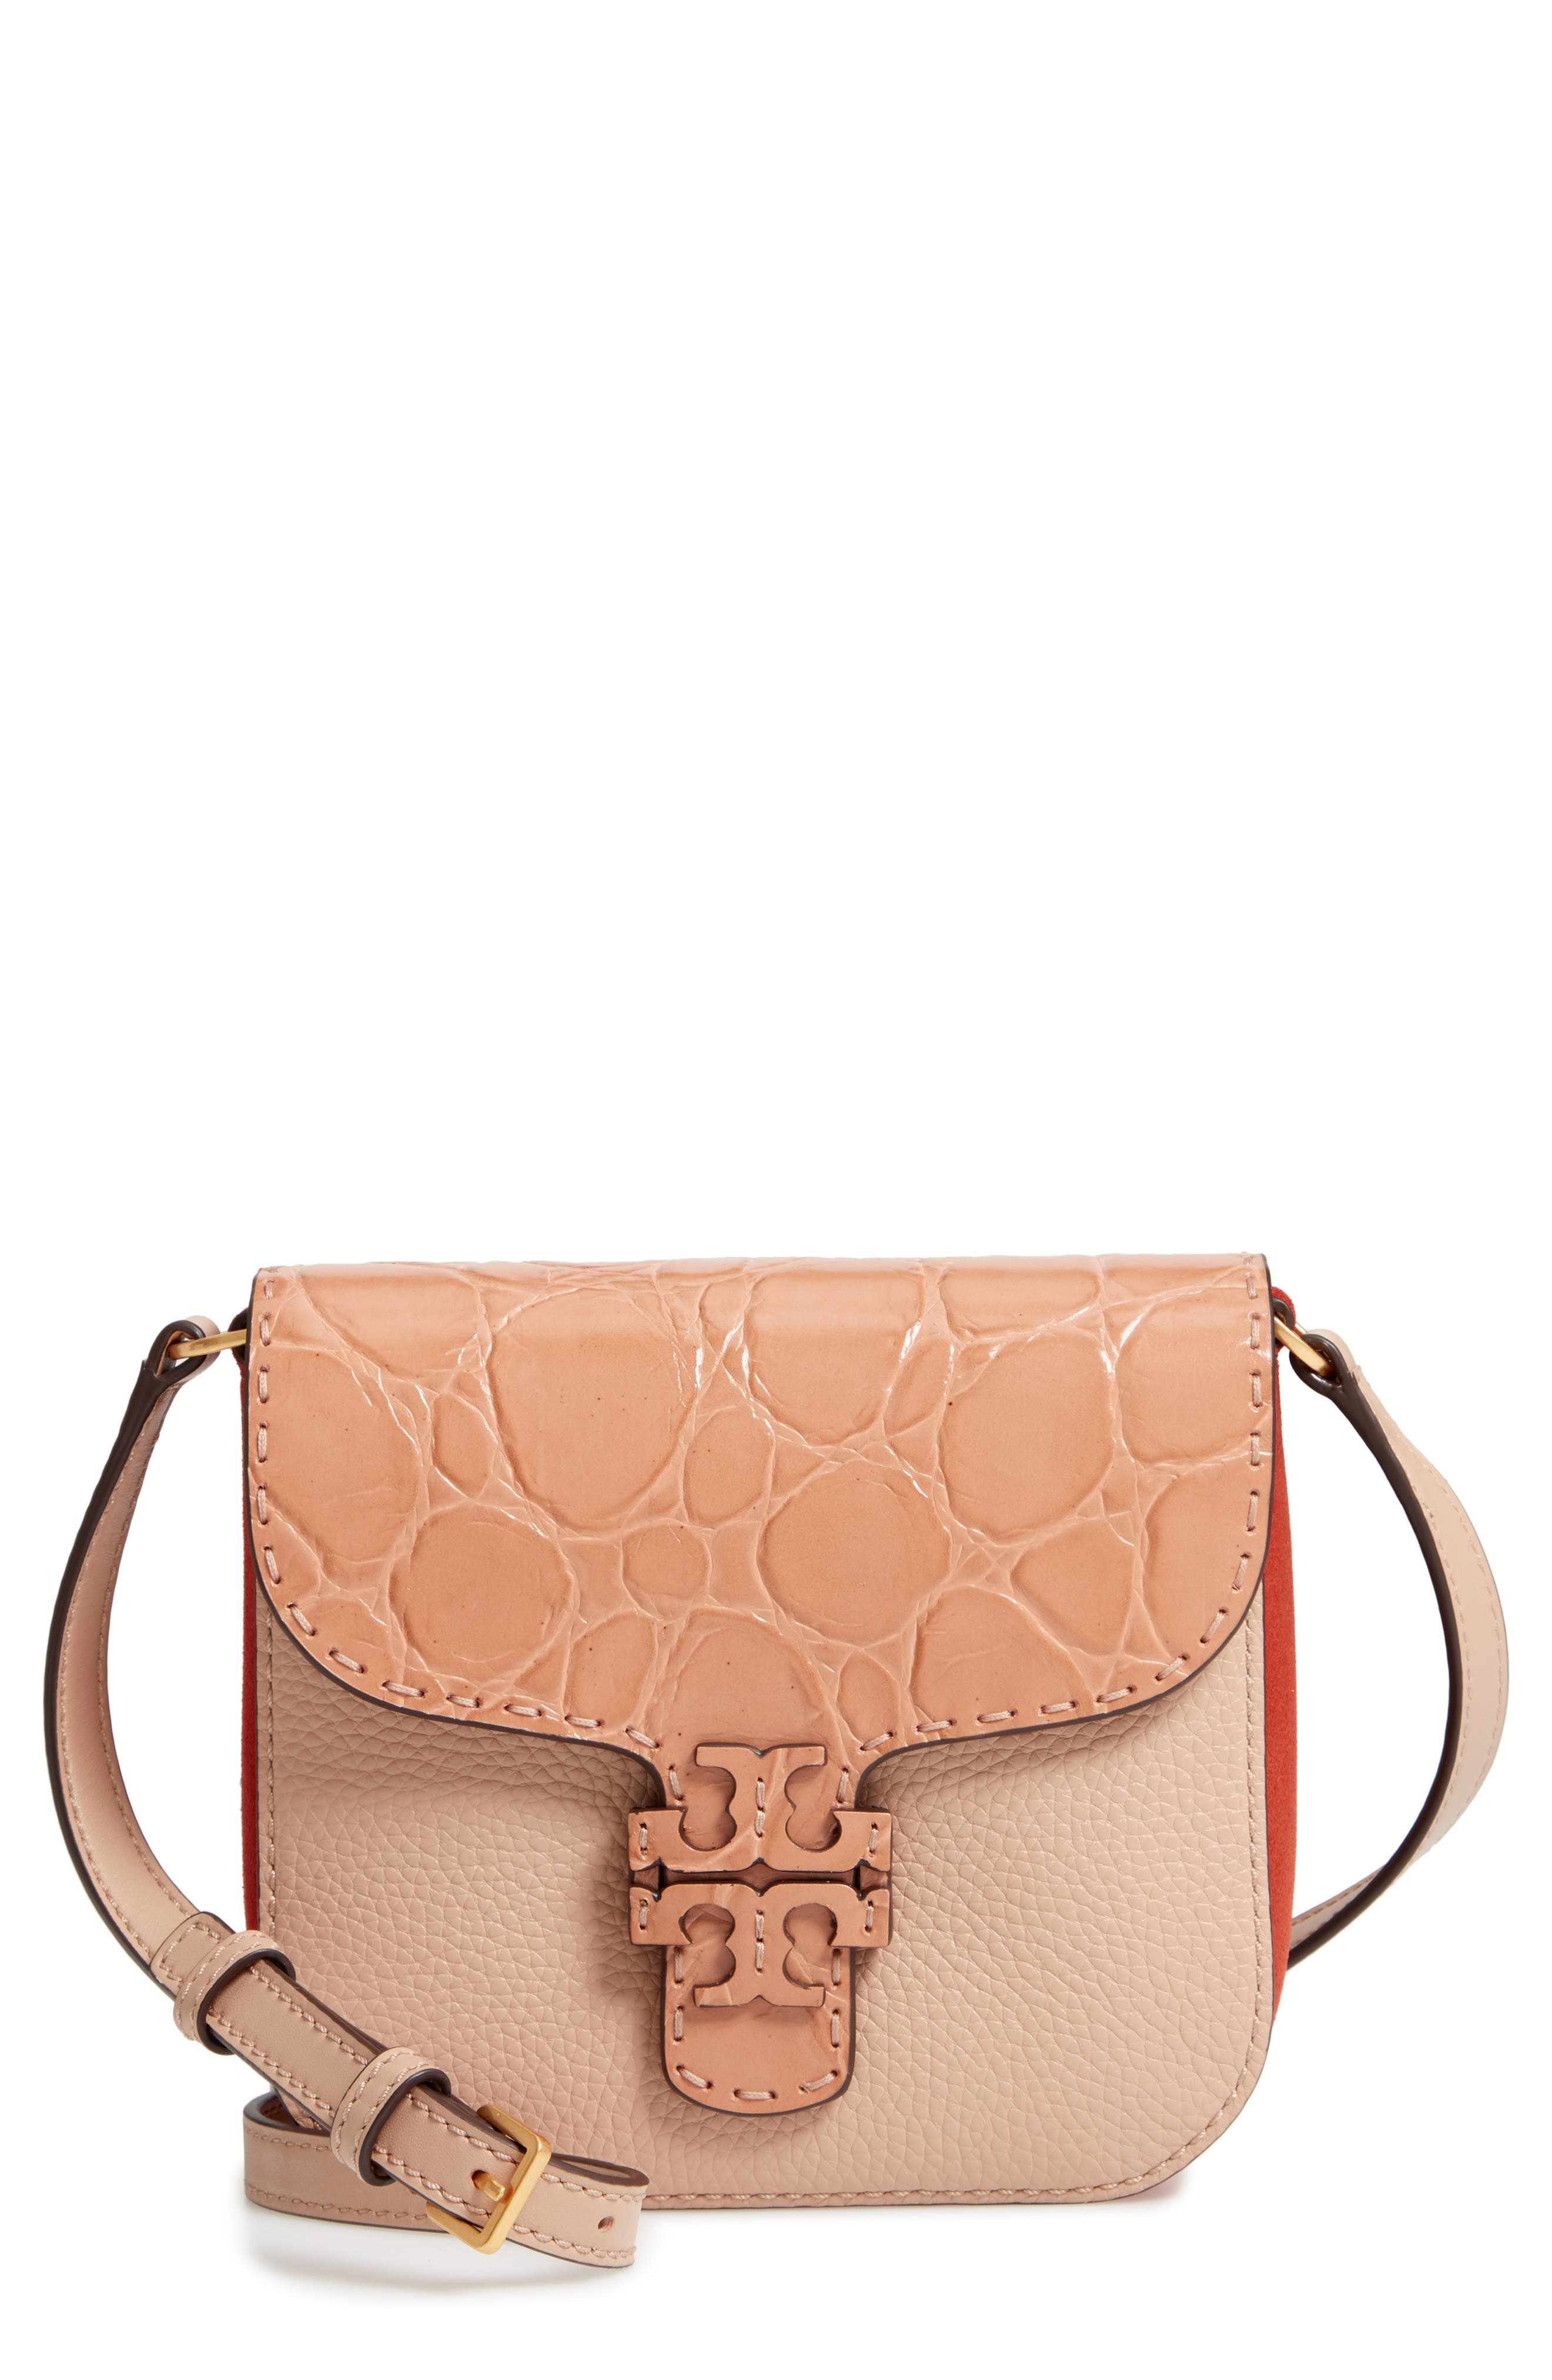 McGraw Croc Embossed Leather Crossbody Bag,                             Main thumbnail 1, color,                             200